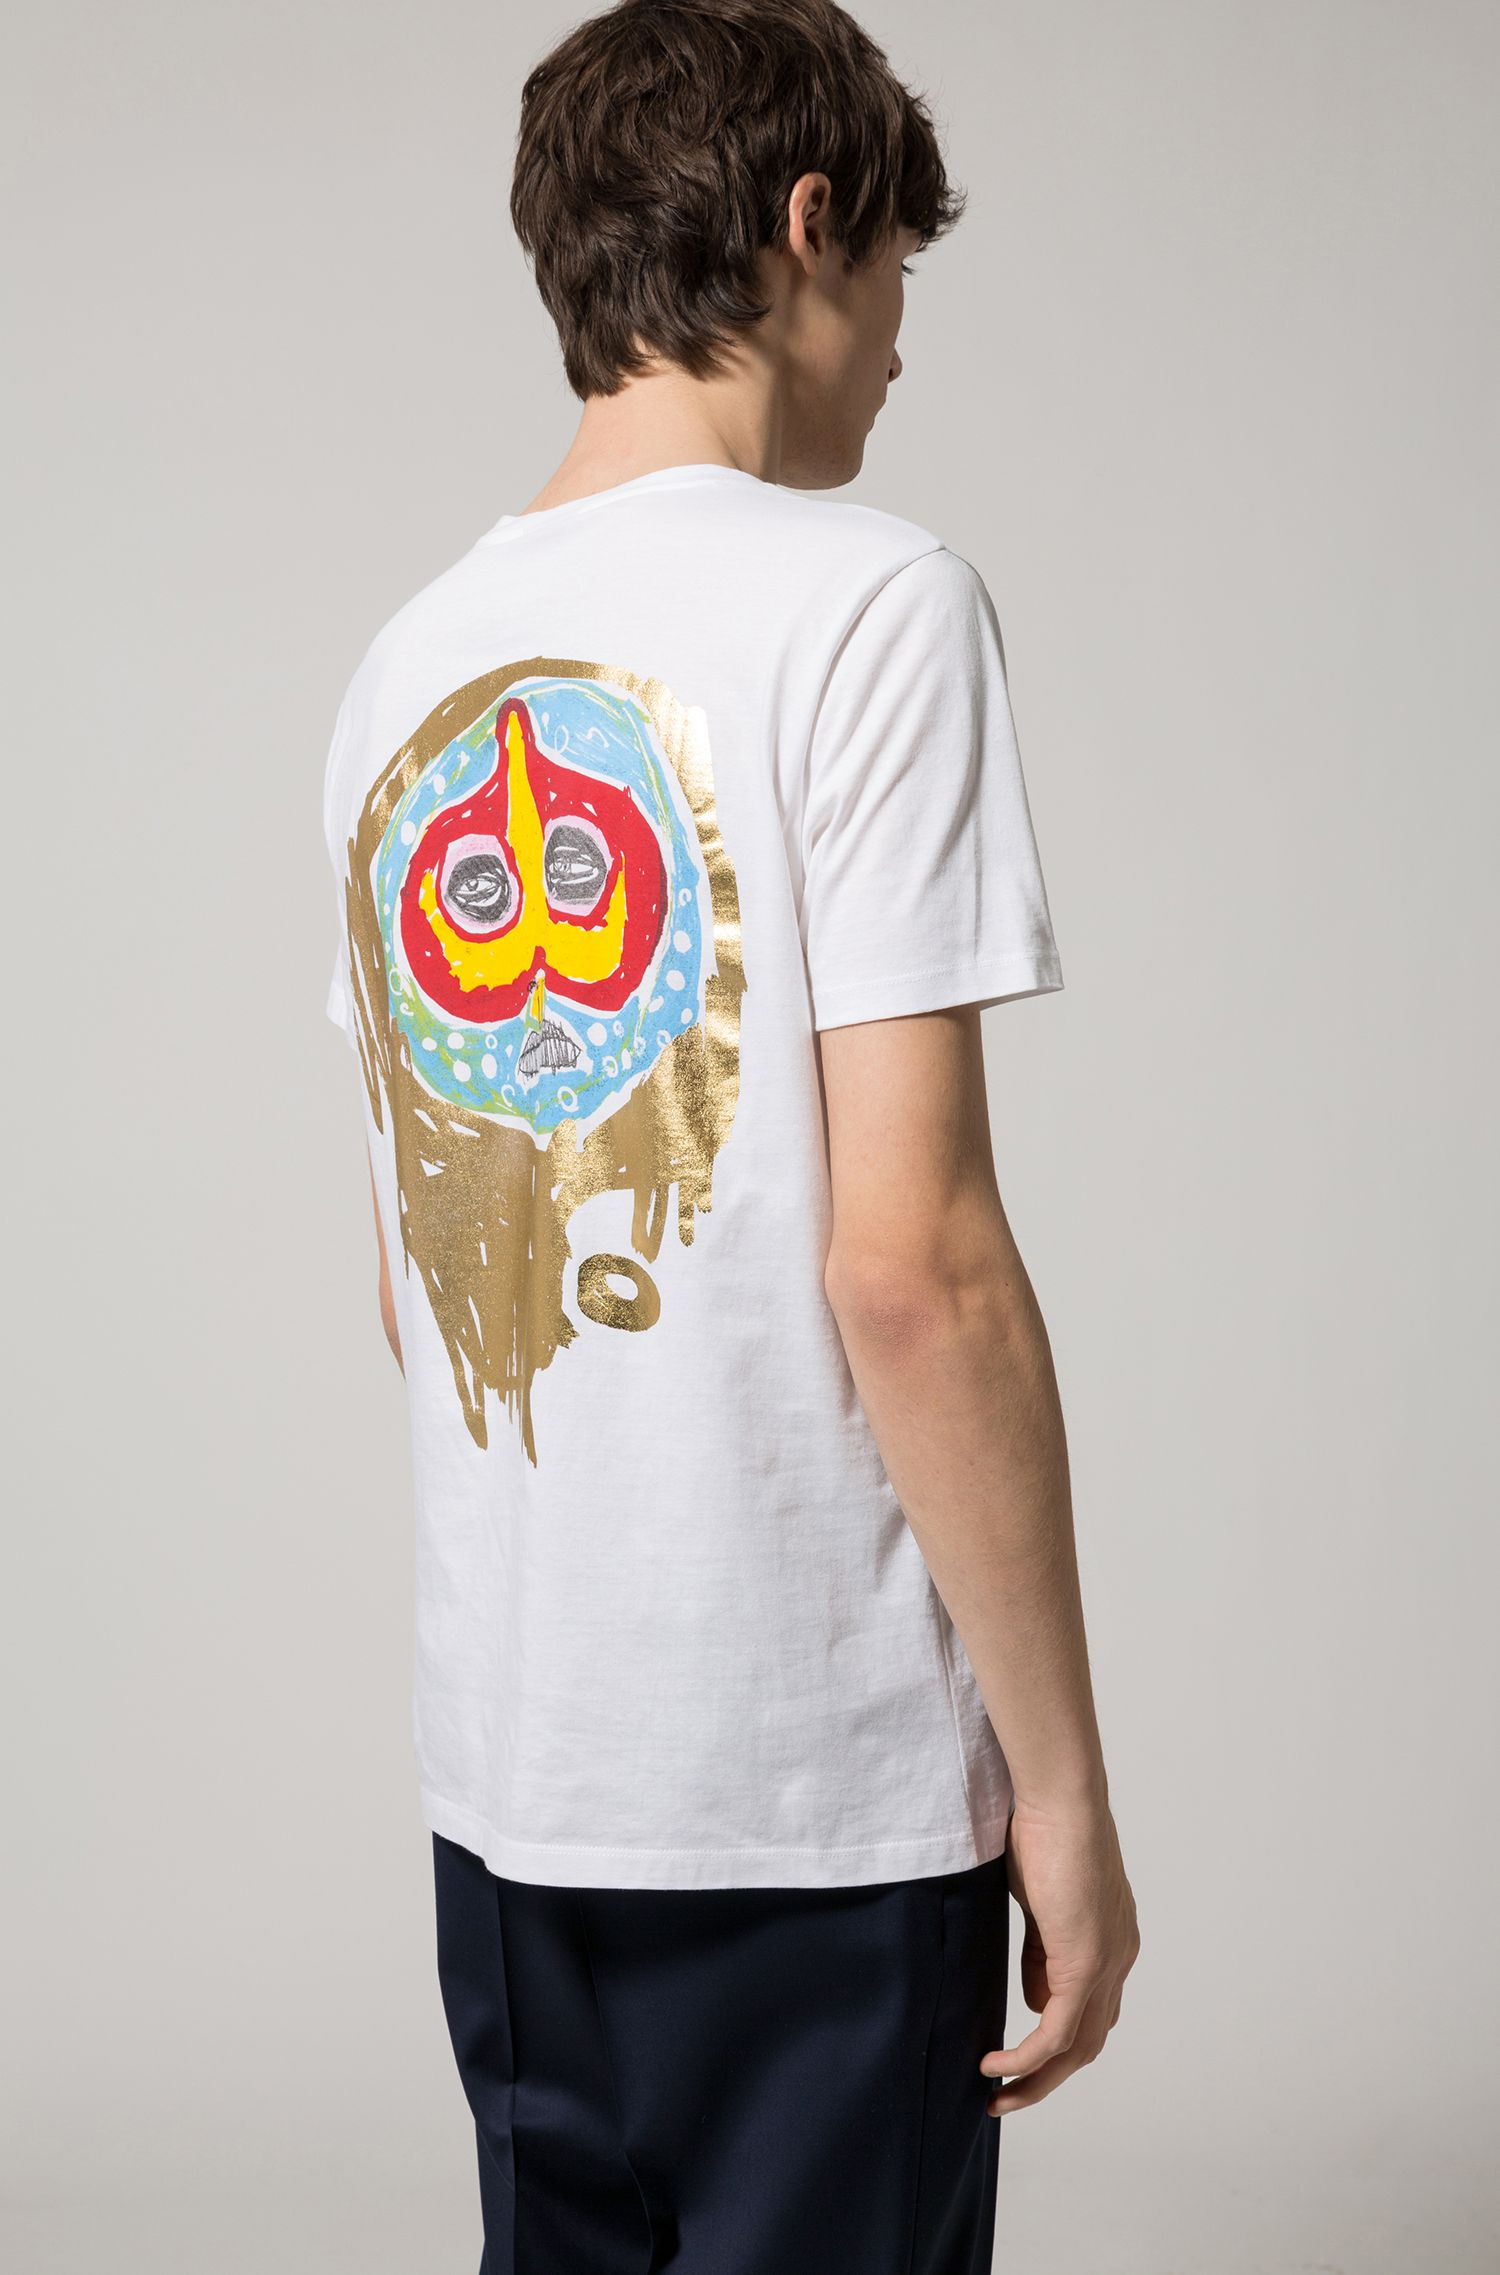 Abstract Cotton Graphic T-Shirt | Dirit , White